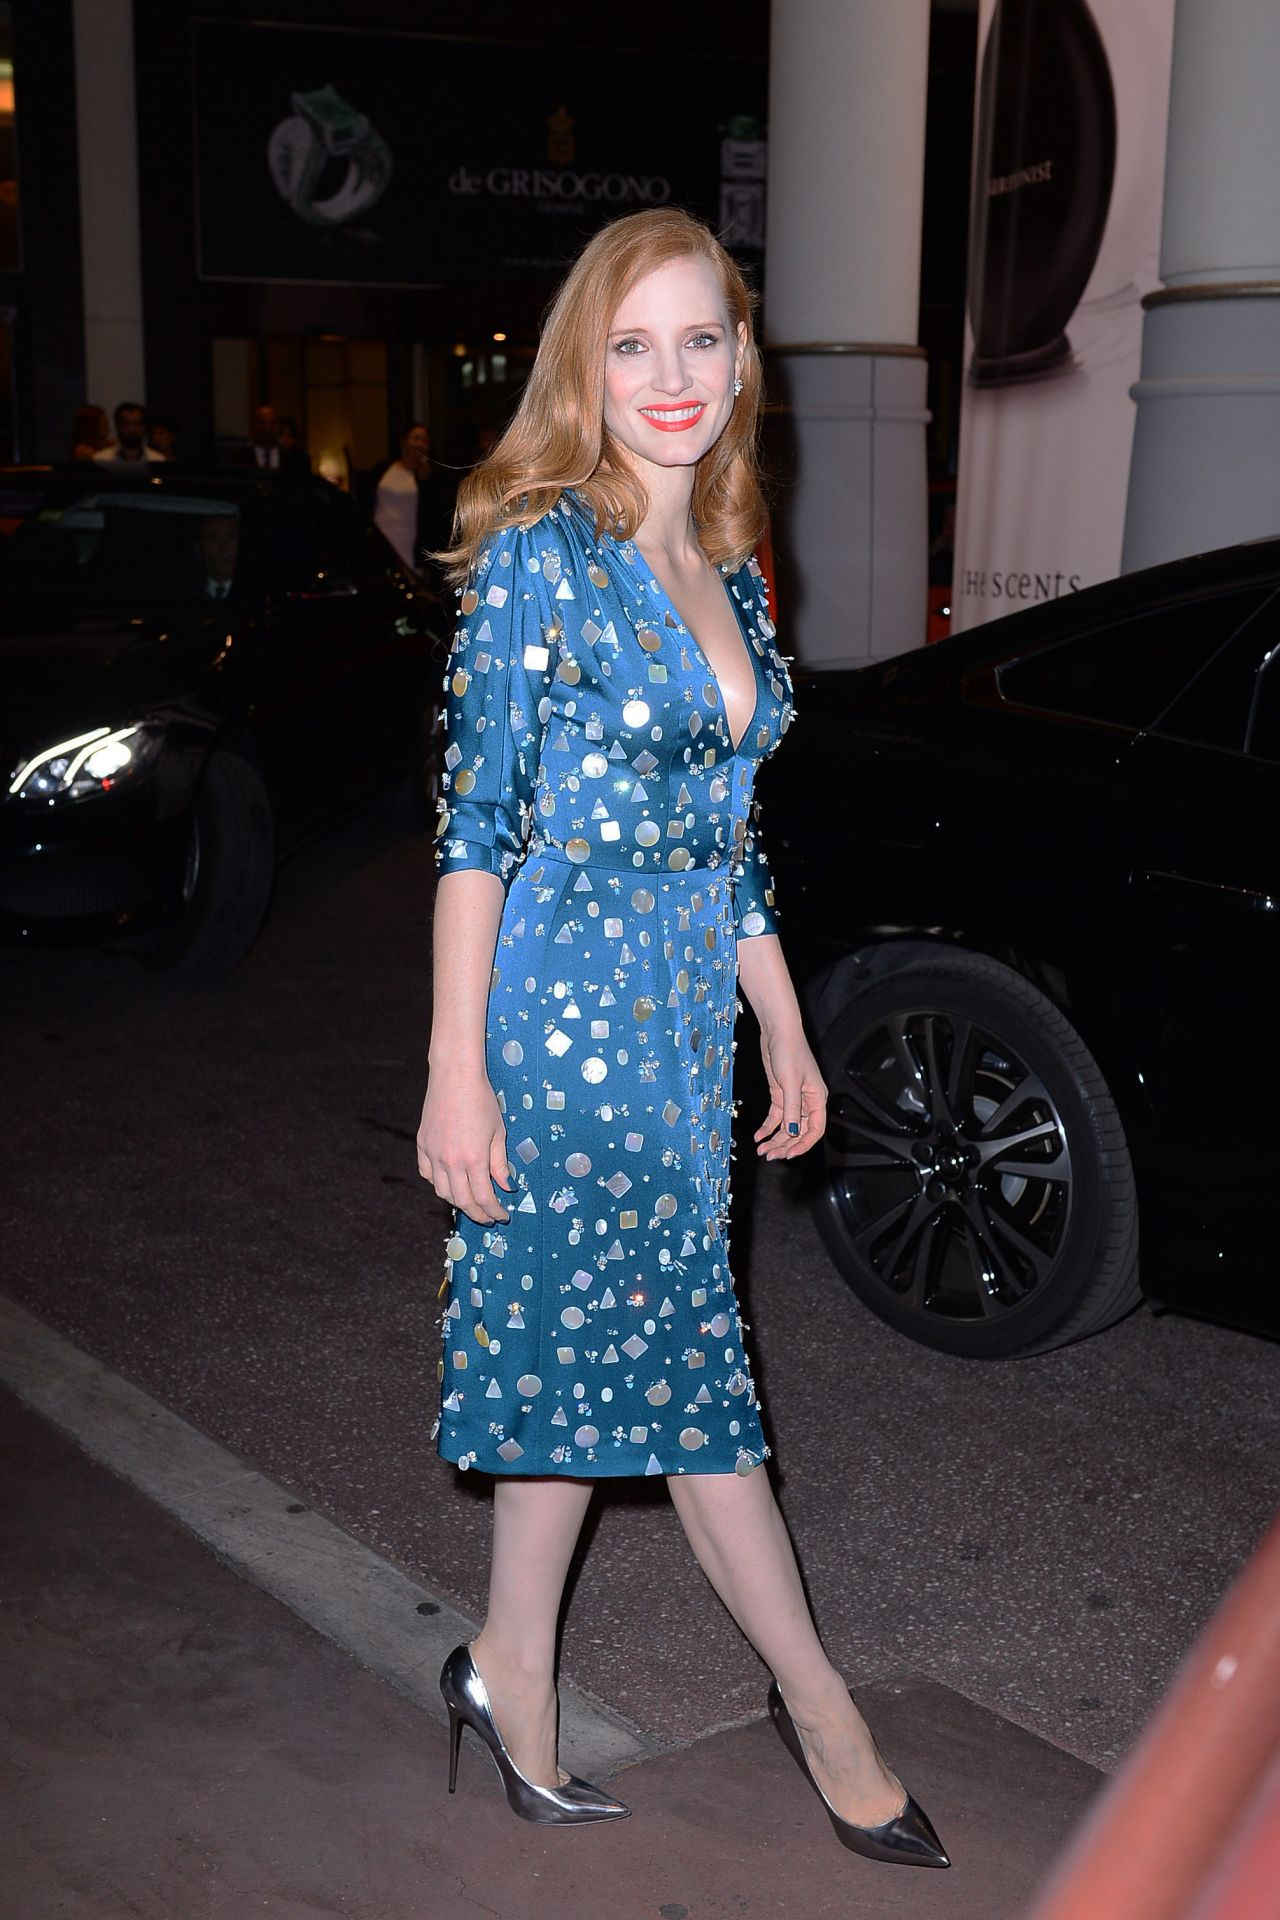 Jessica Chastain in a Blue Dress - Night Out in Cannes, France 05/22/2017